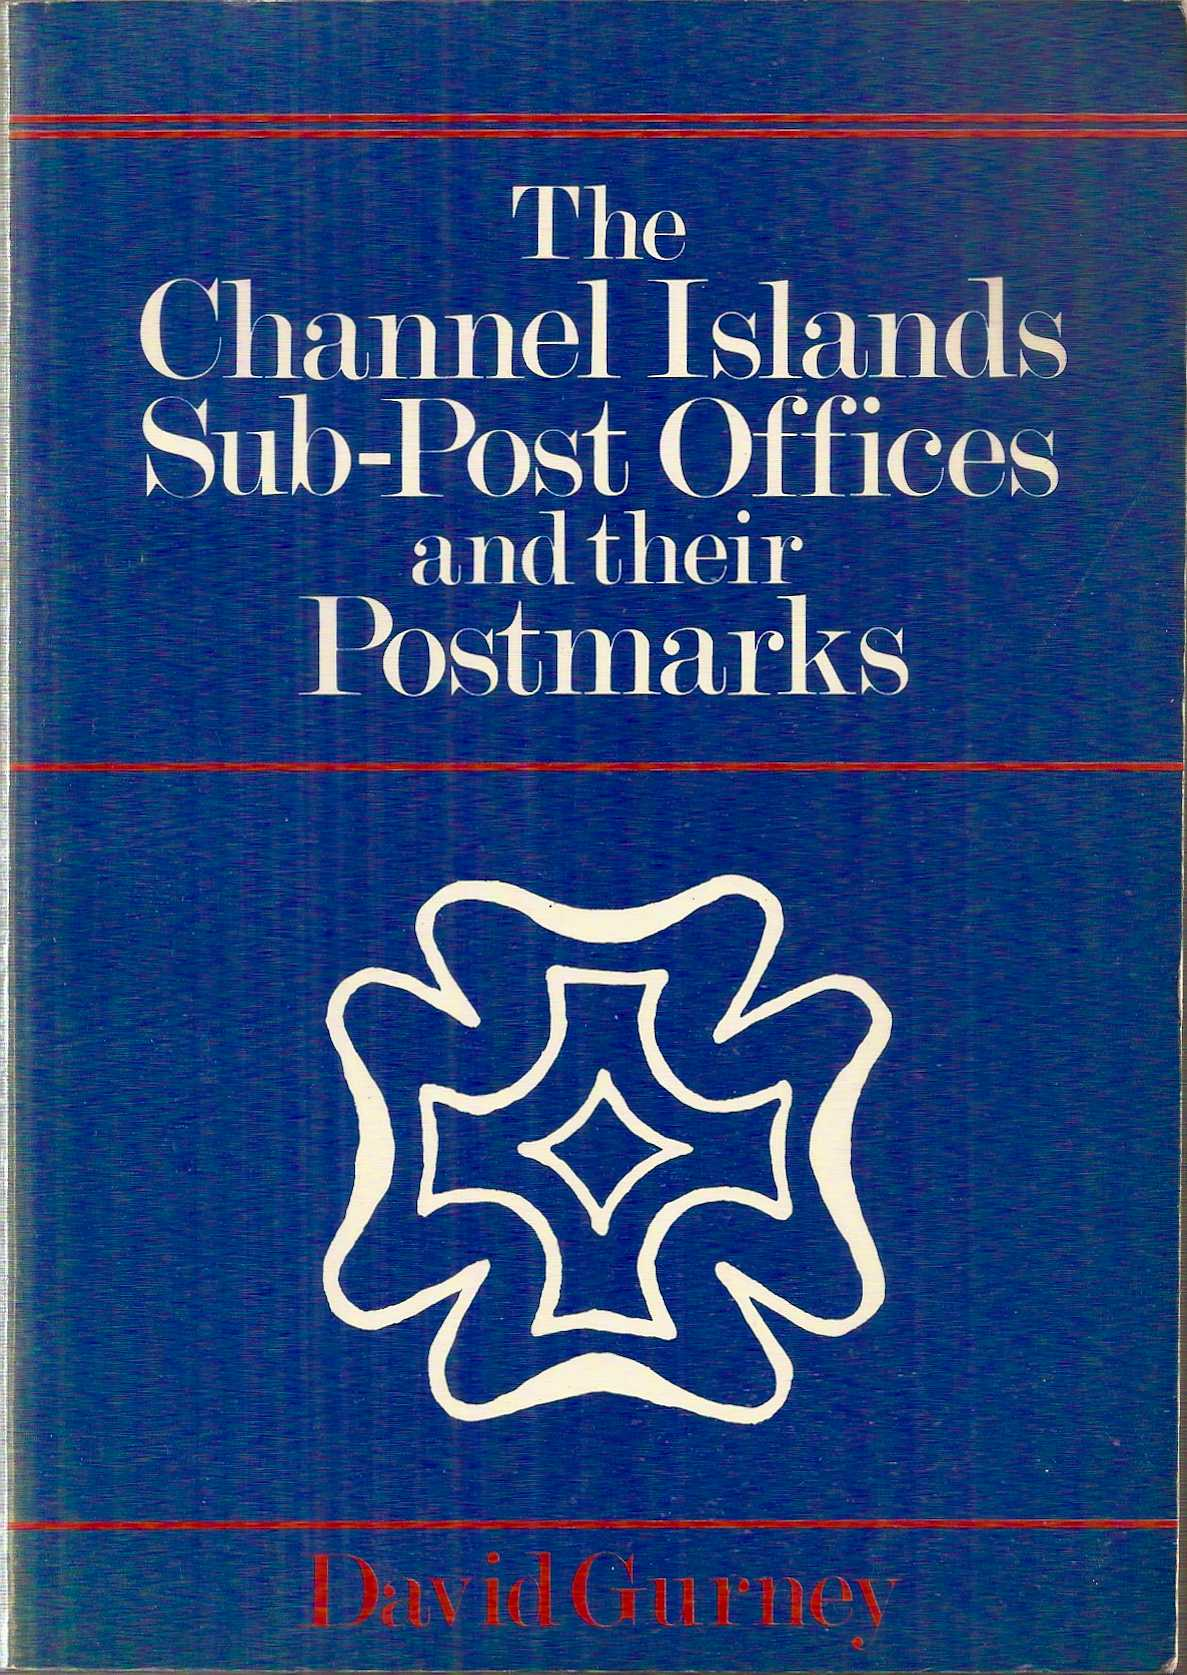 CHANNEL ISLANDS SUB-POST OFFICES, David Gurney, 1983 (pbk)